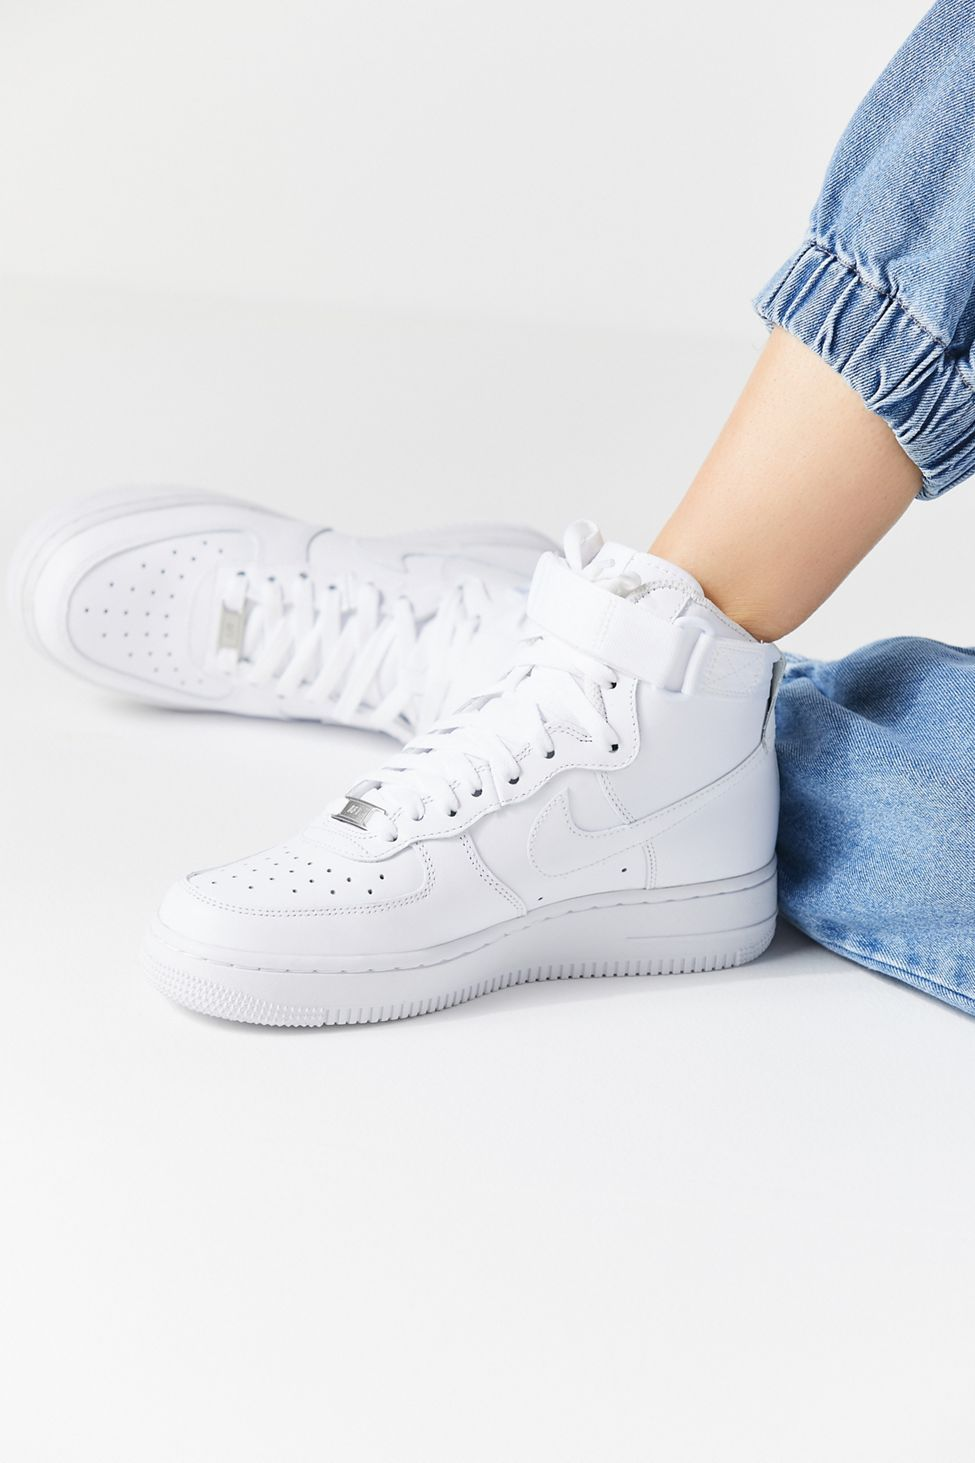 Nike Air Force 1 High Top Sneaker | Zapatos nike mujer ...